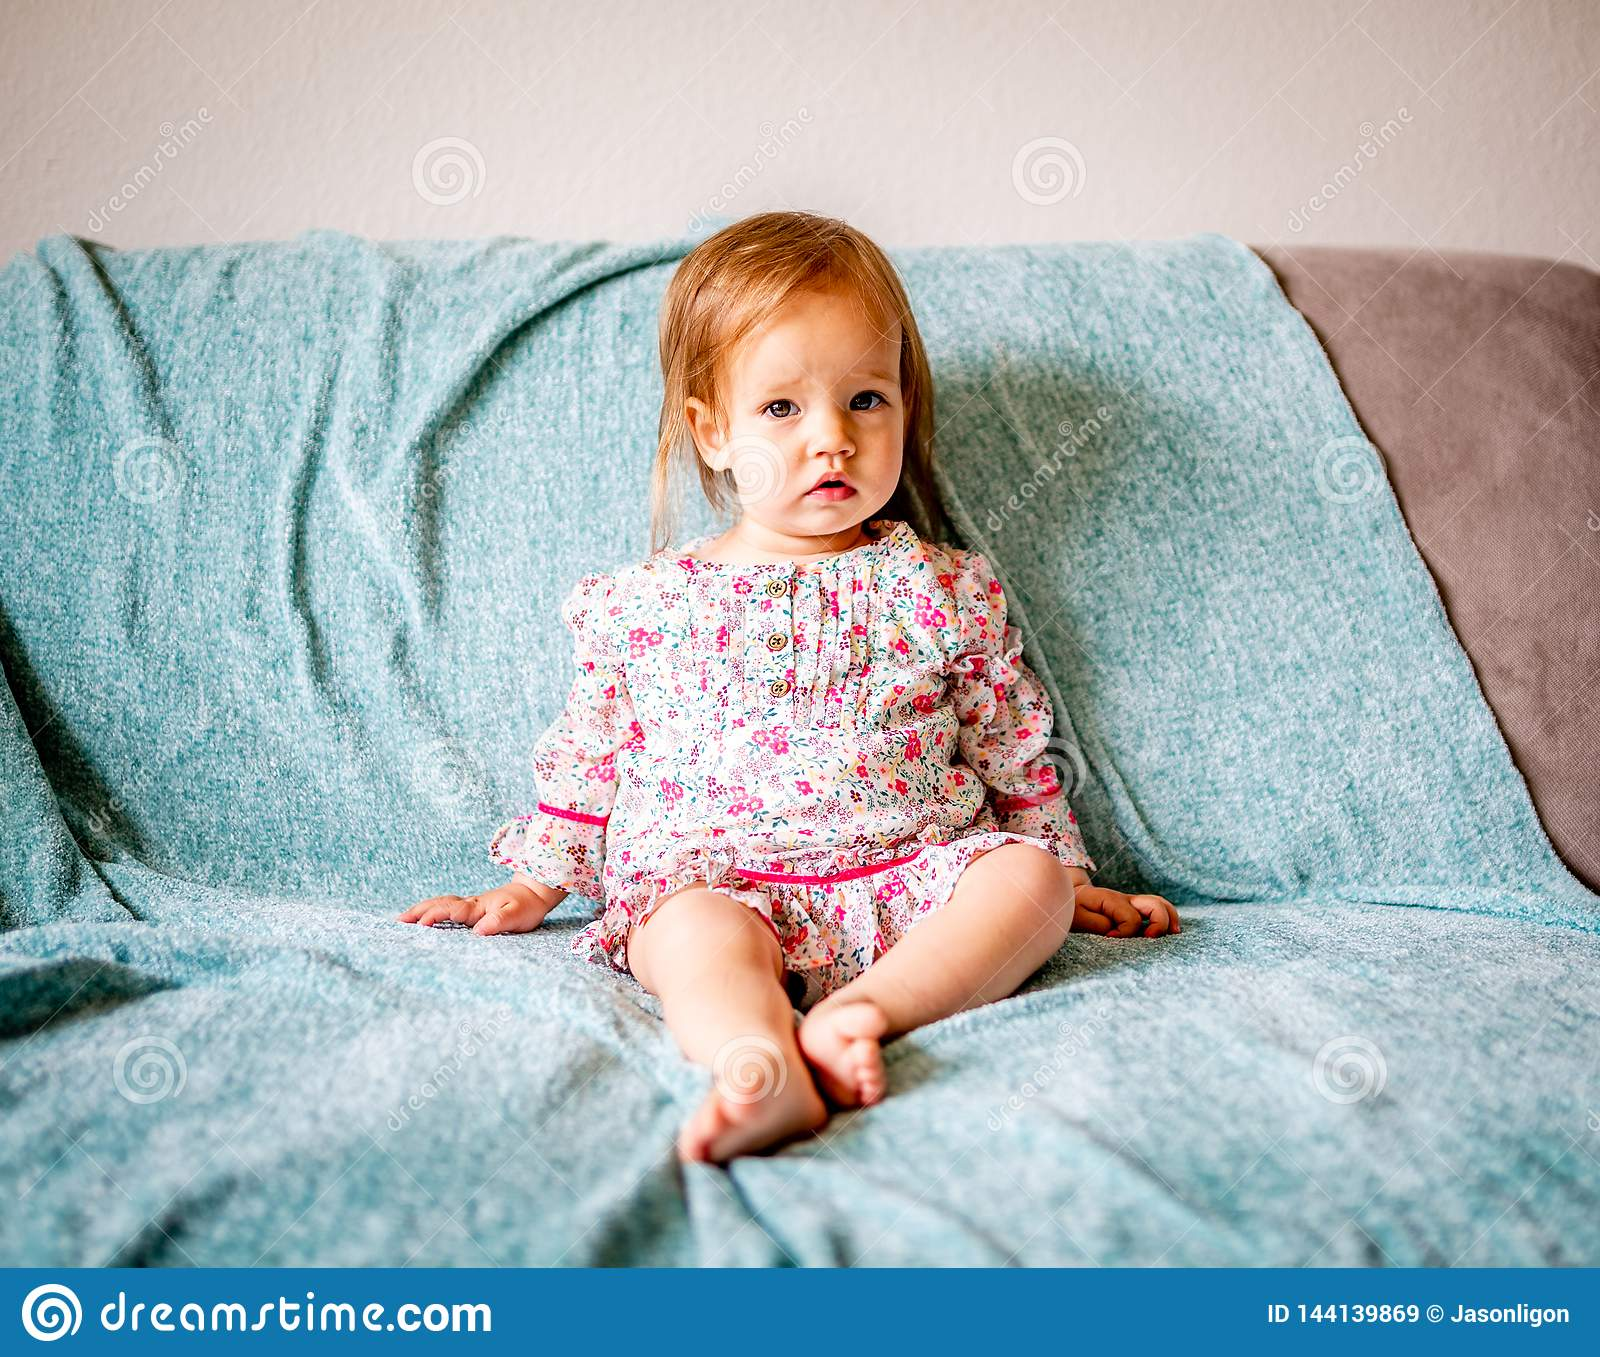 Adorable Baby Girl Sits on Couch